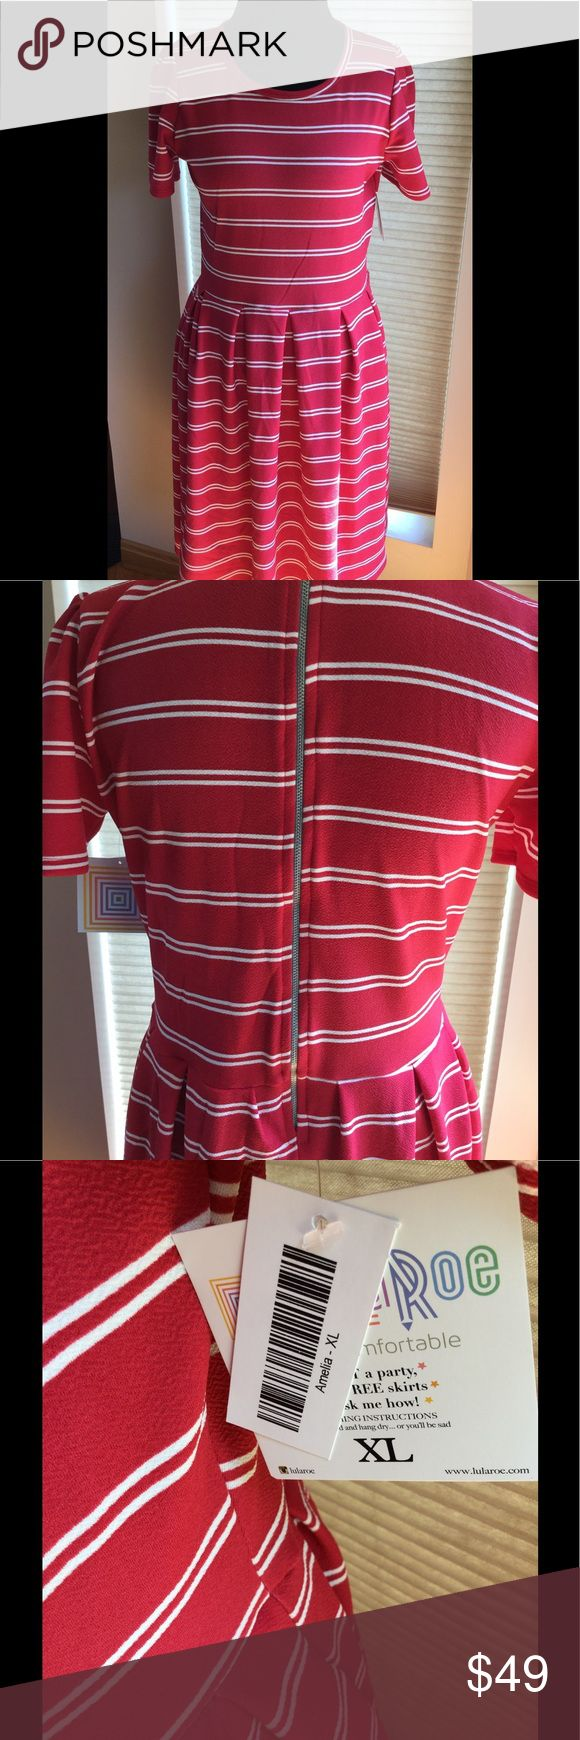 Lularoe Amelia XL Red/White Stripe New ♥️ This dress is so cute😬. Red/White stripes XL Lularoe stretchy material. According to chart size 18😉 NWT. Final Price!!🌹 LuLaRoe Dresses Midi